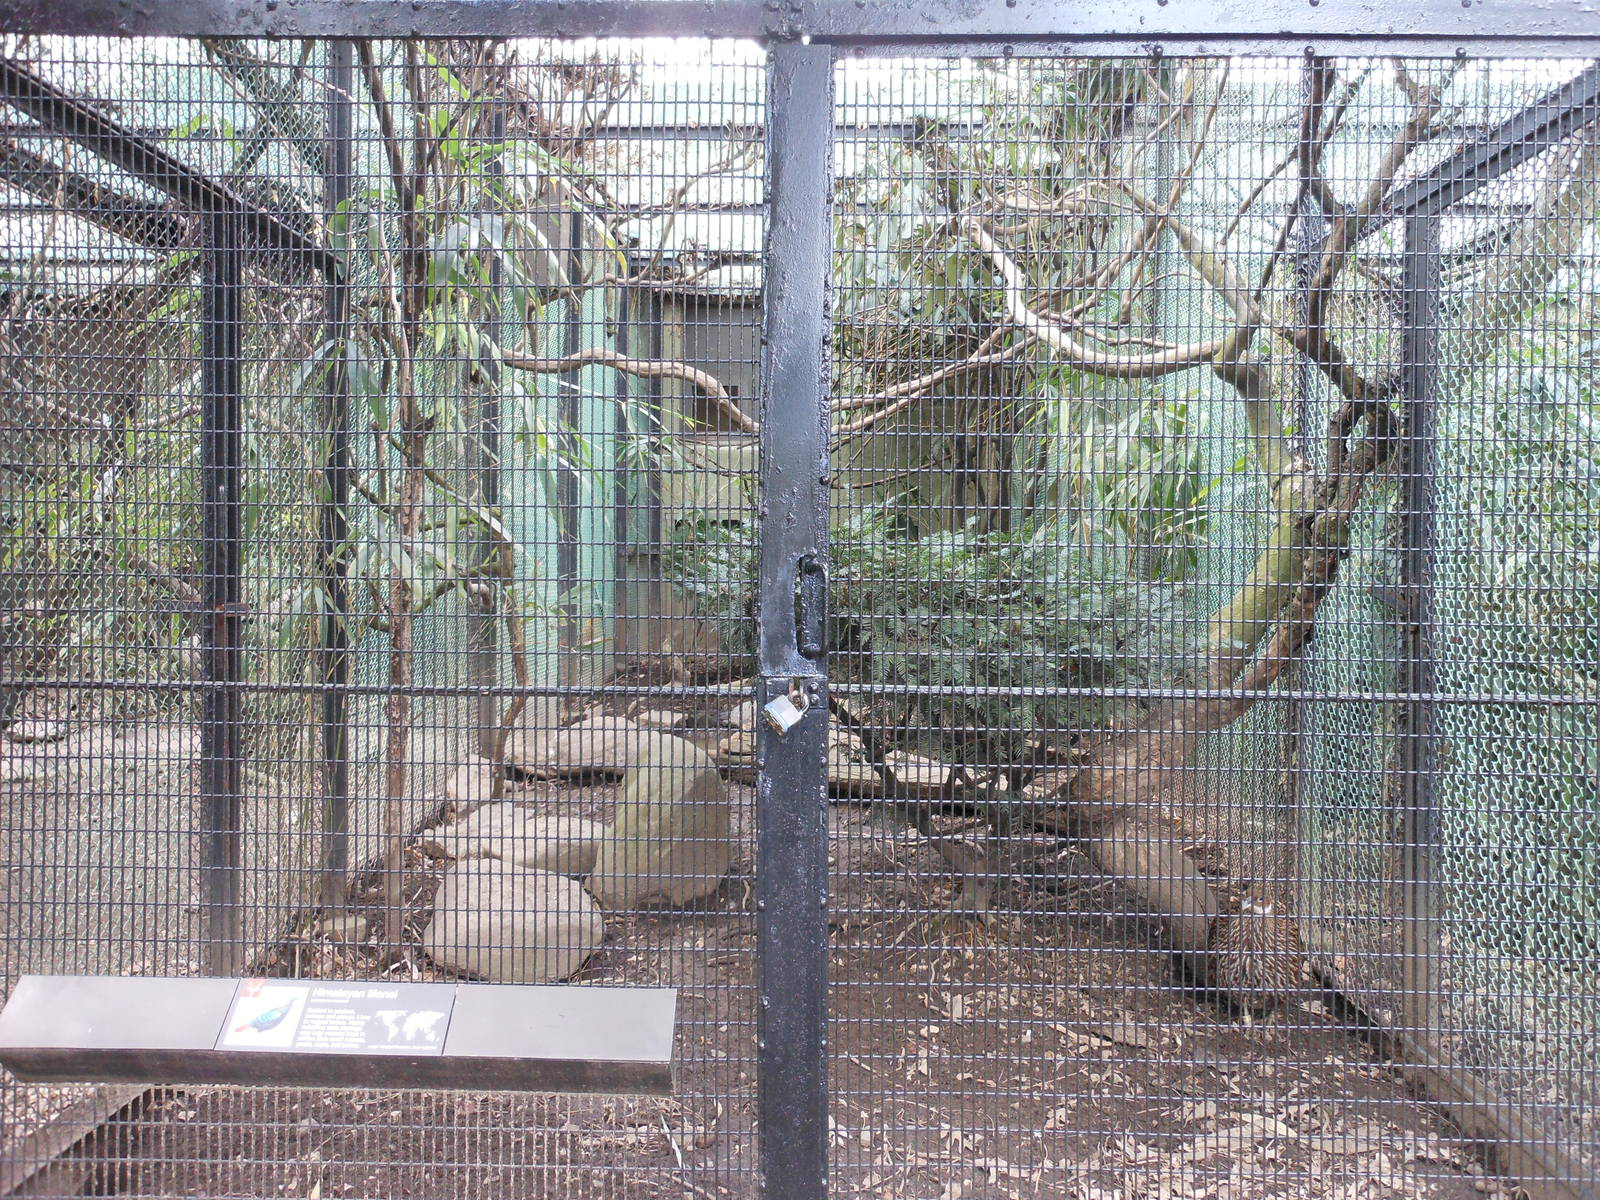 20+ Pheasant Enclosures Pictures and Ideas on Weric